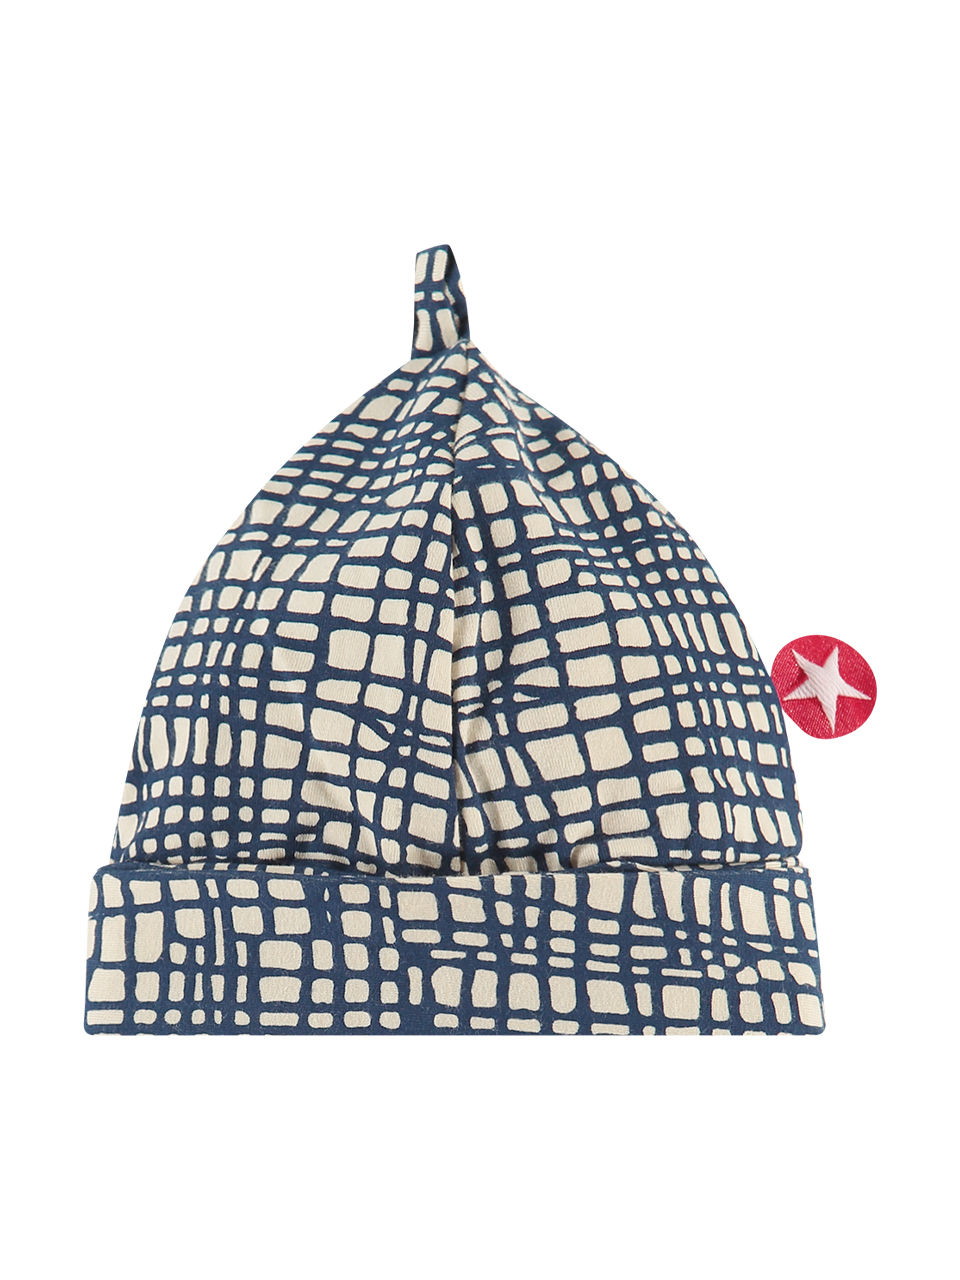 Hat kelkje jersey print d.blue/ off white